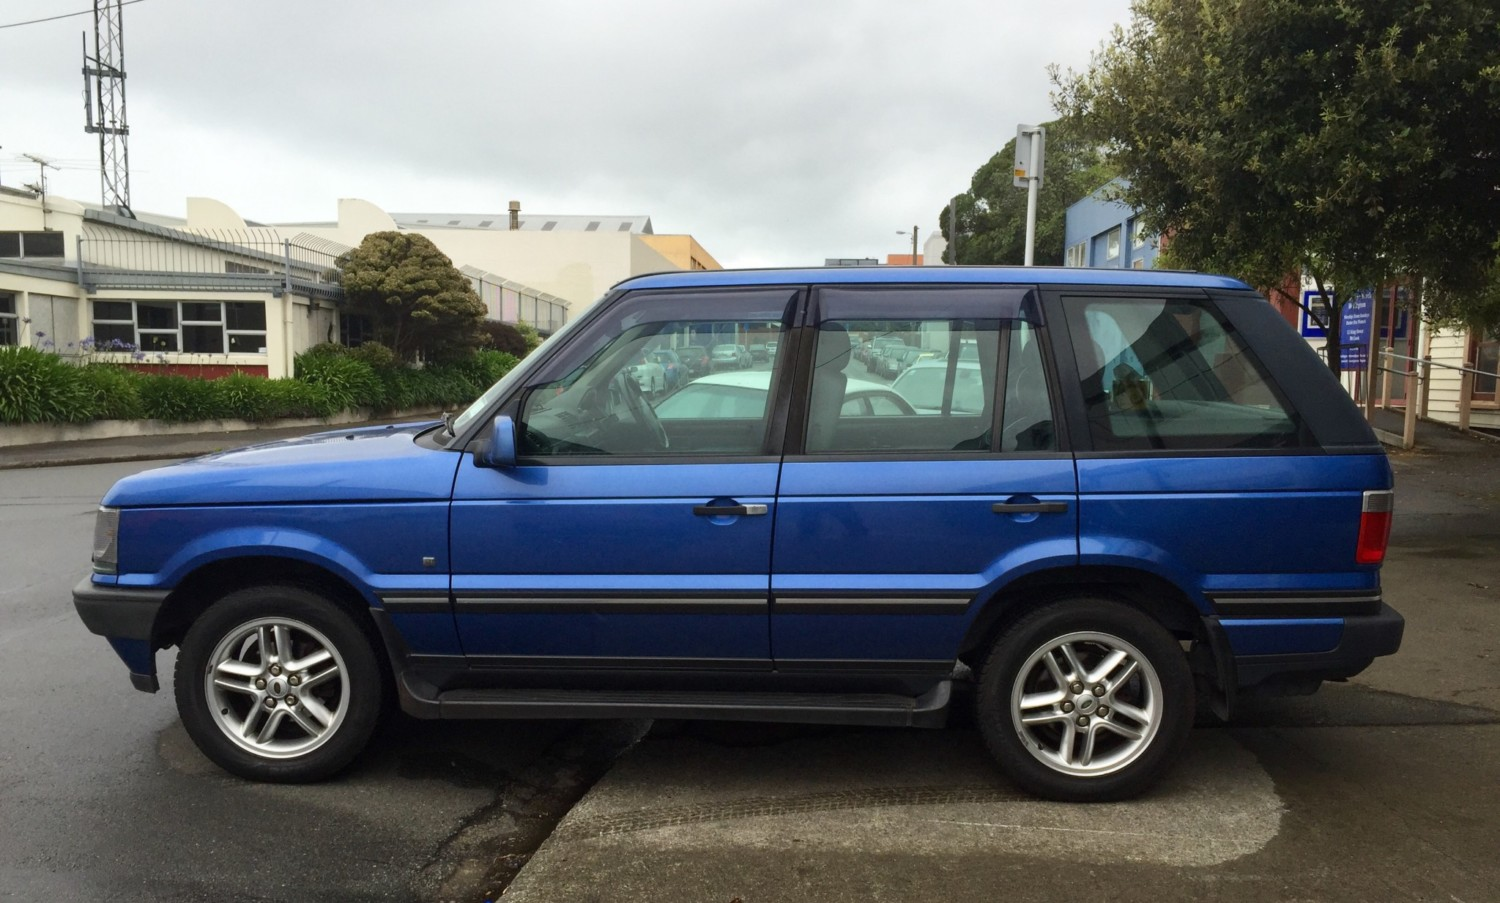 hight resolution of blue p38 range rover in for some routine repairs